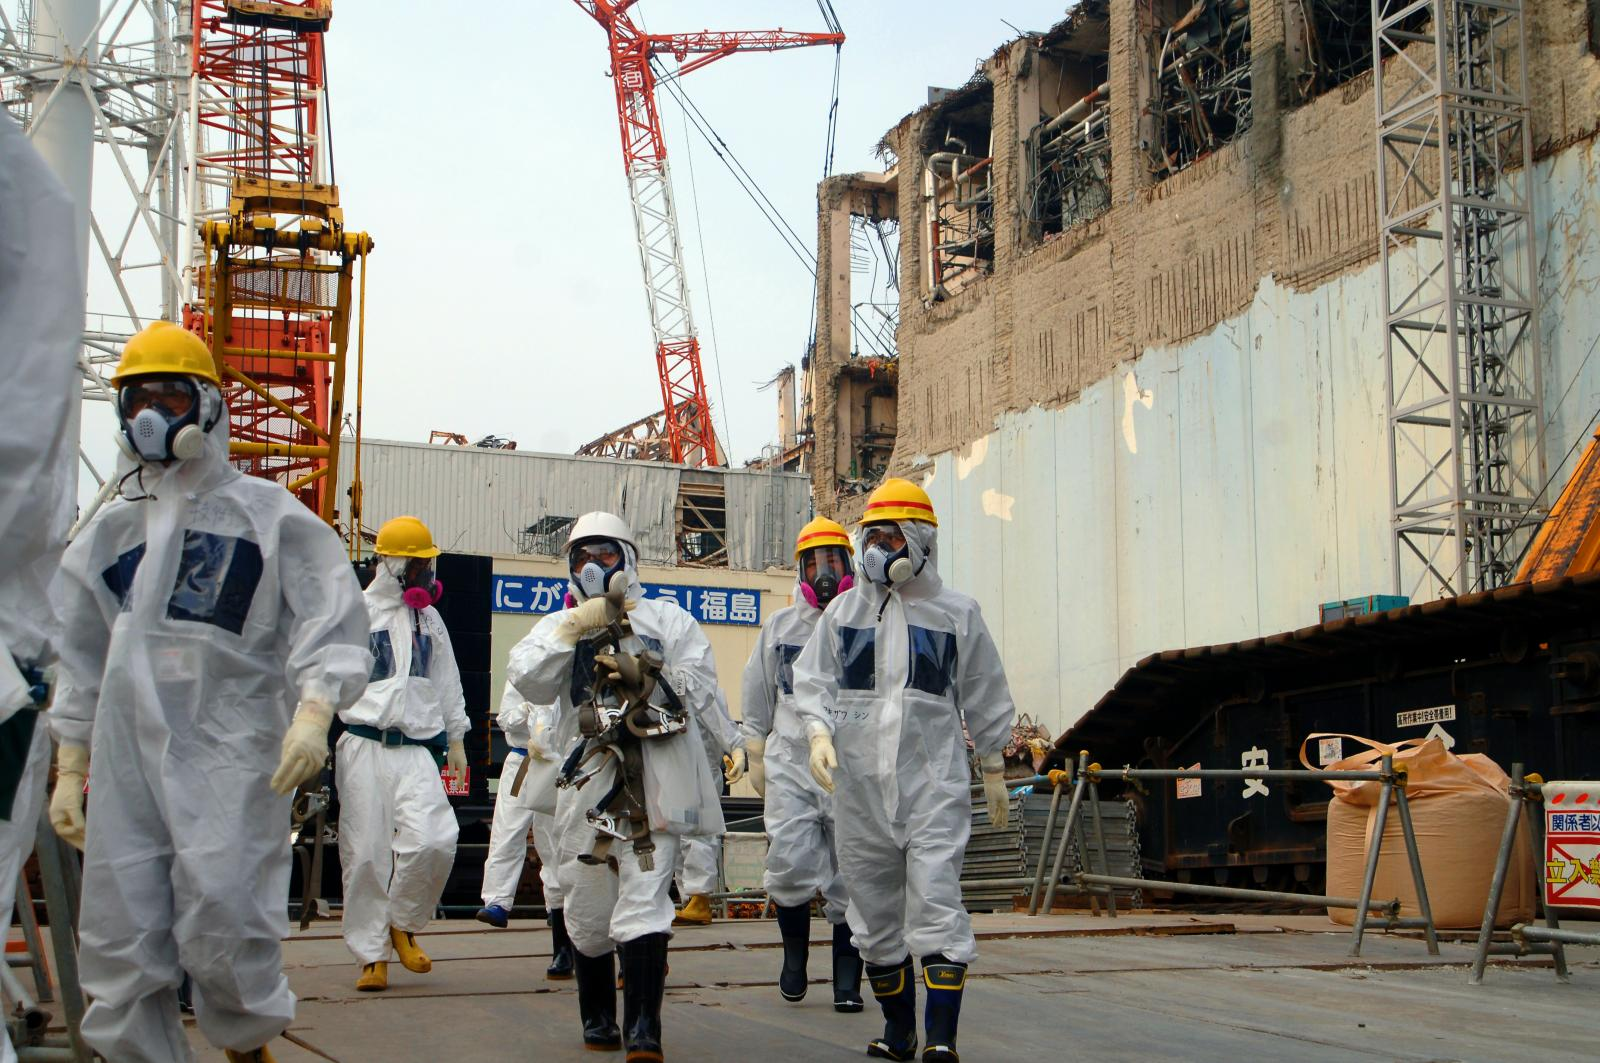 IAEA experts depart Unit 4 of TEPCO's Fukushima Daiichi Nuclear Power Station on 17 April 2013